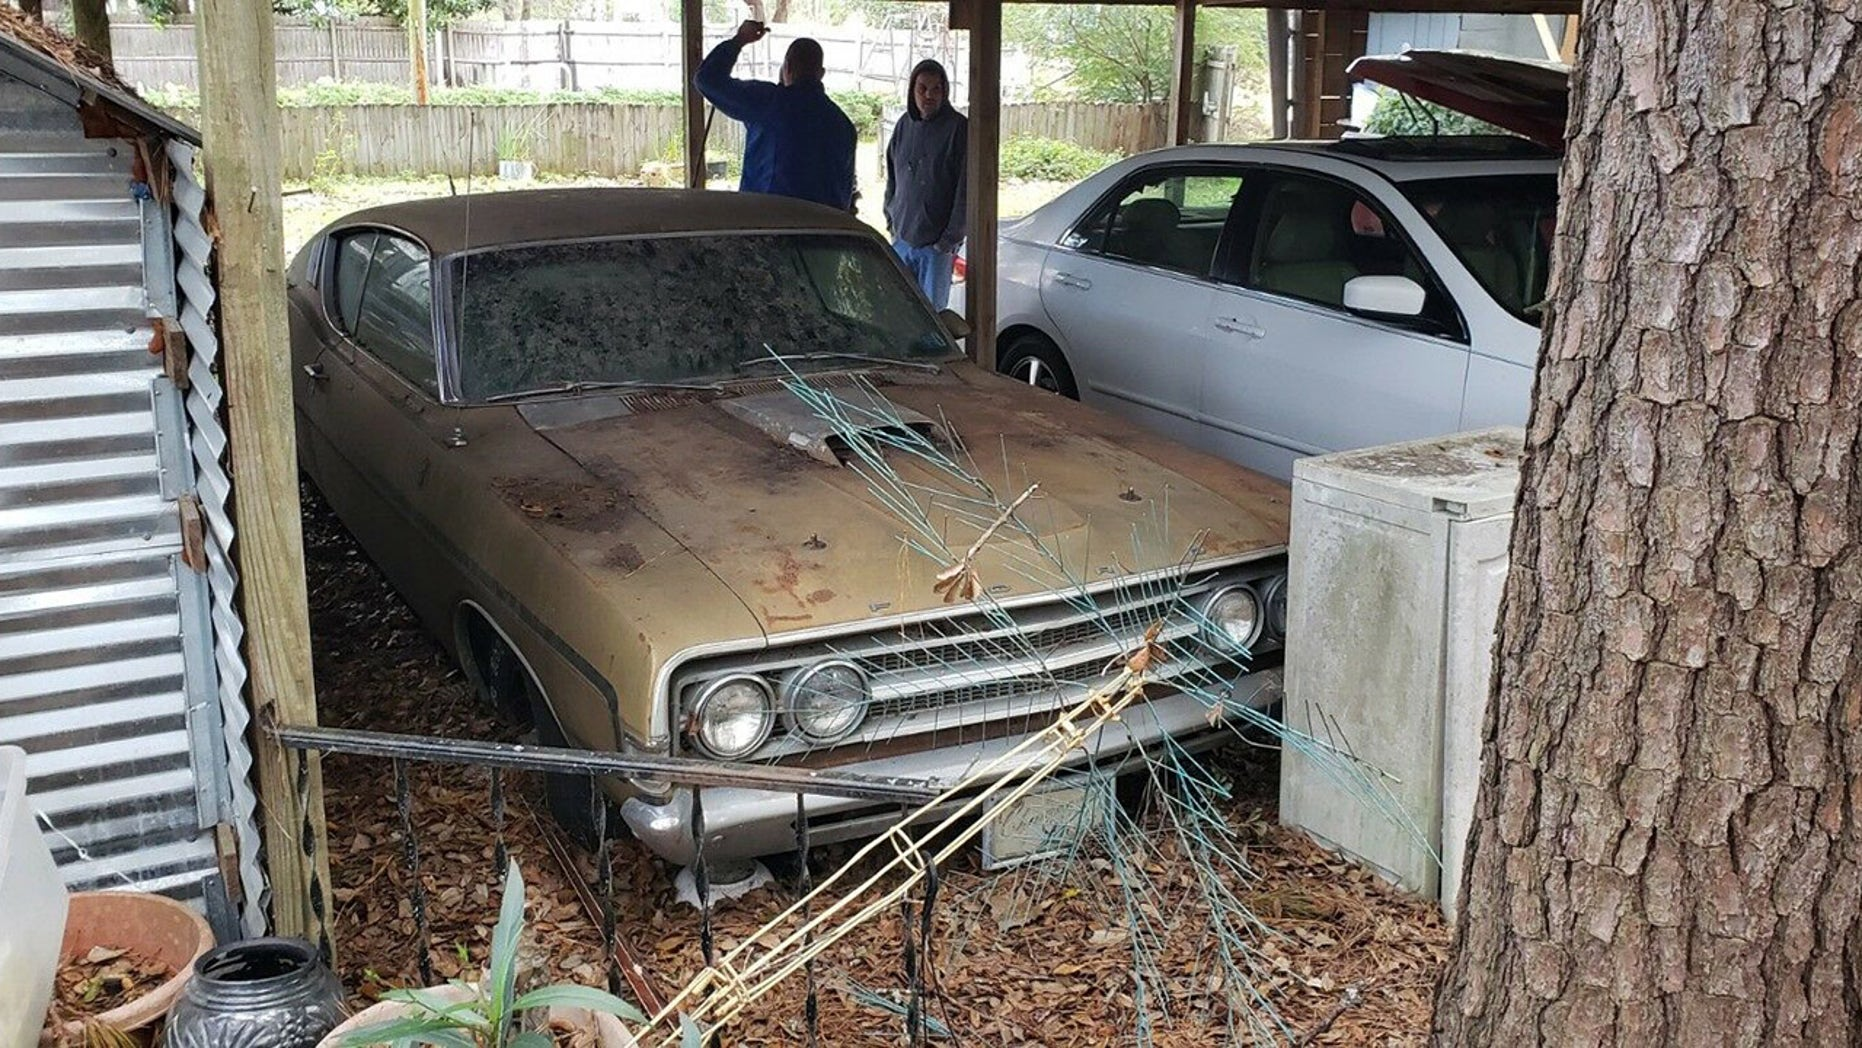 An Open Air Carport In Myrtle Beach Isnt The Ideal Place To Store A Muscle Car For  Years But Thats Exactly Where A Single Owner Classic Ford Thats